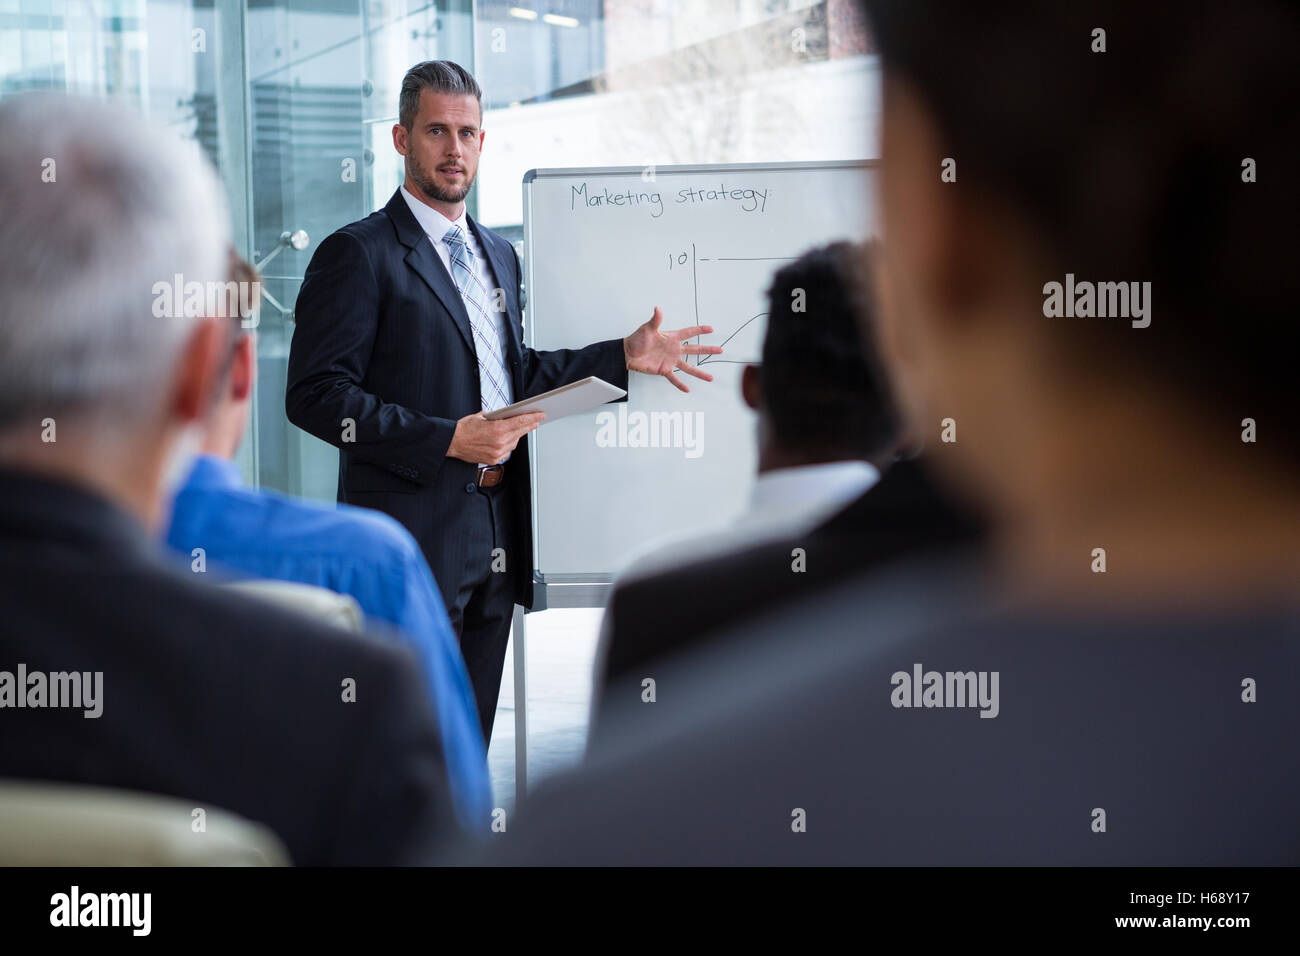 Businessman discussing on white board with co-workers - Stock Image